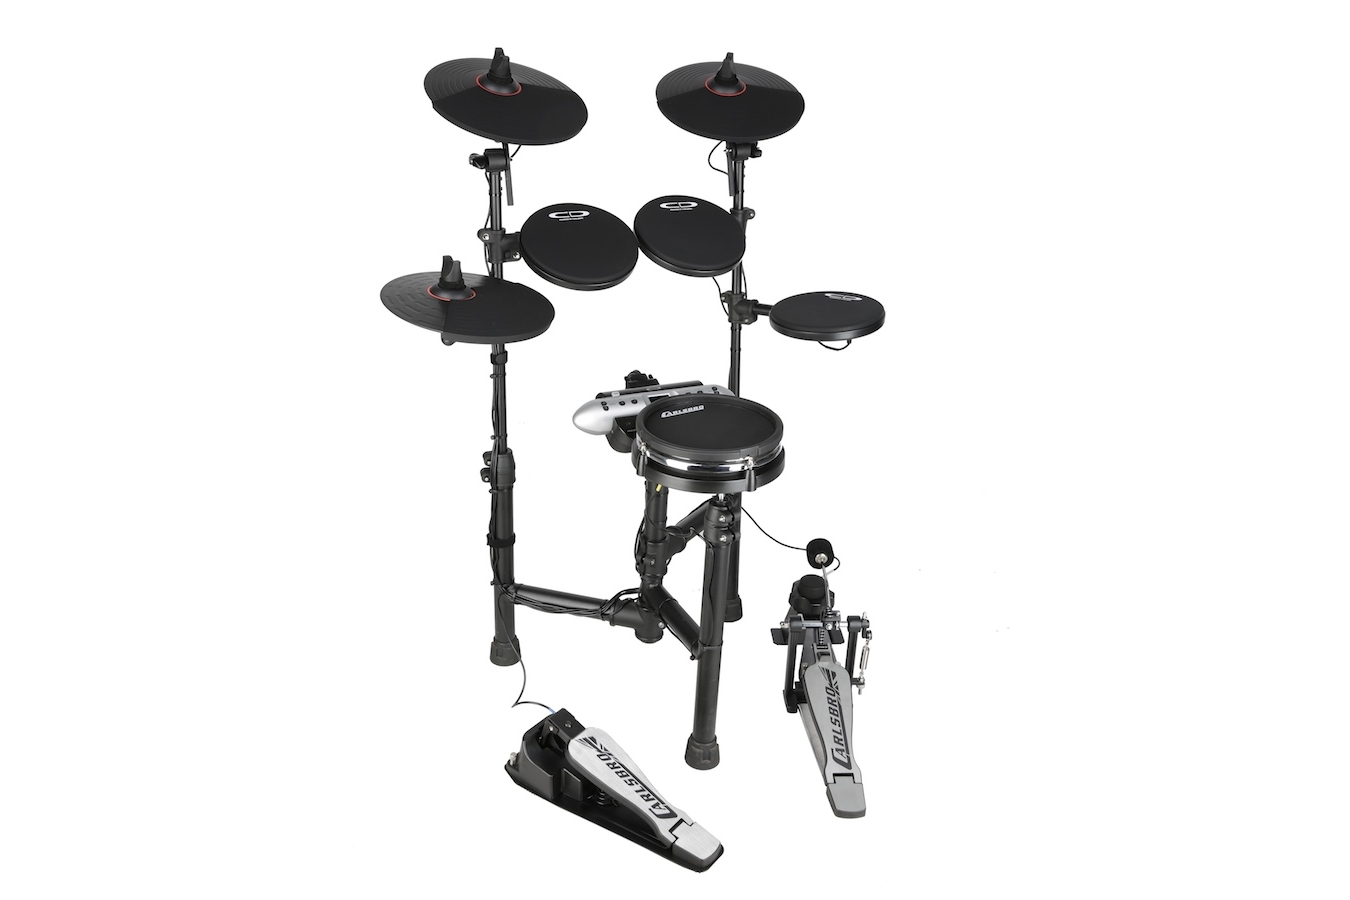 Carlsbro CSD130M Compact Electric Drum Kit w/ Mesh Snare